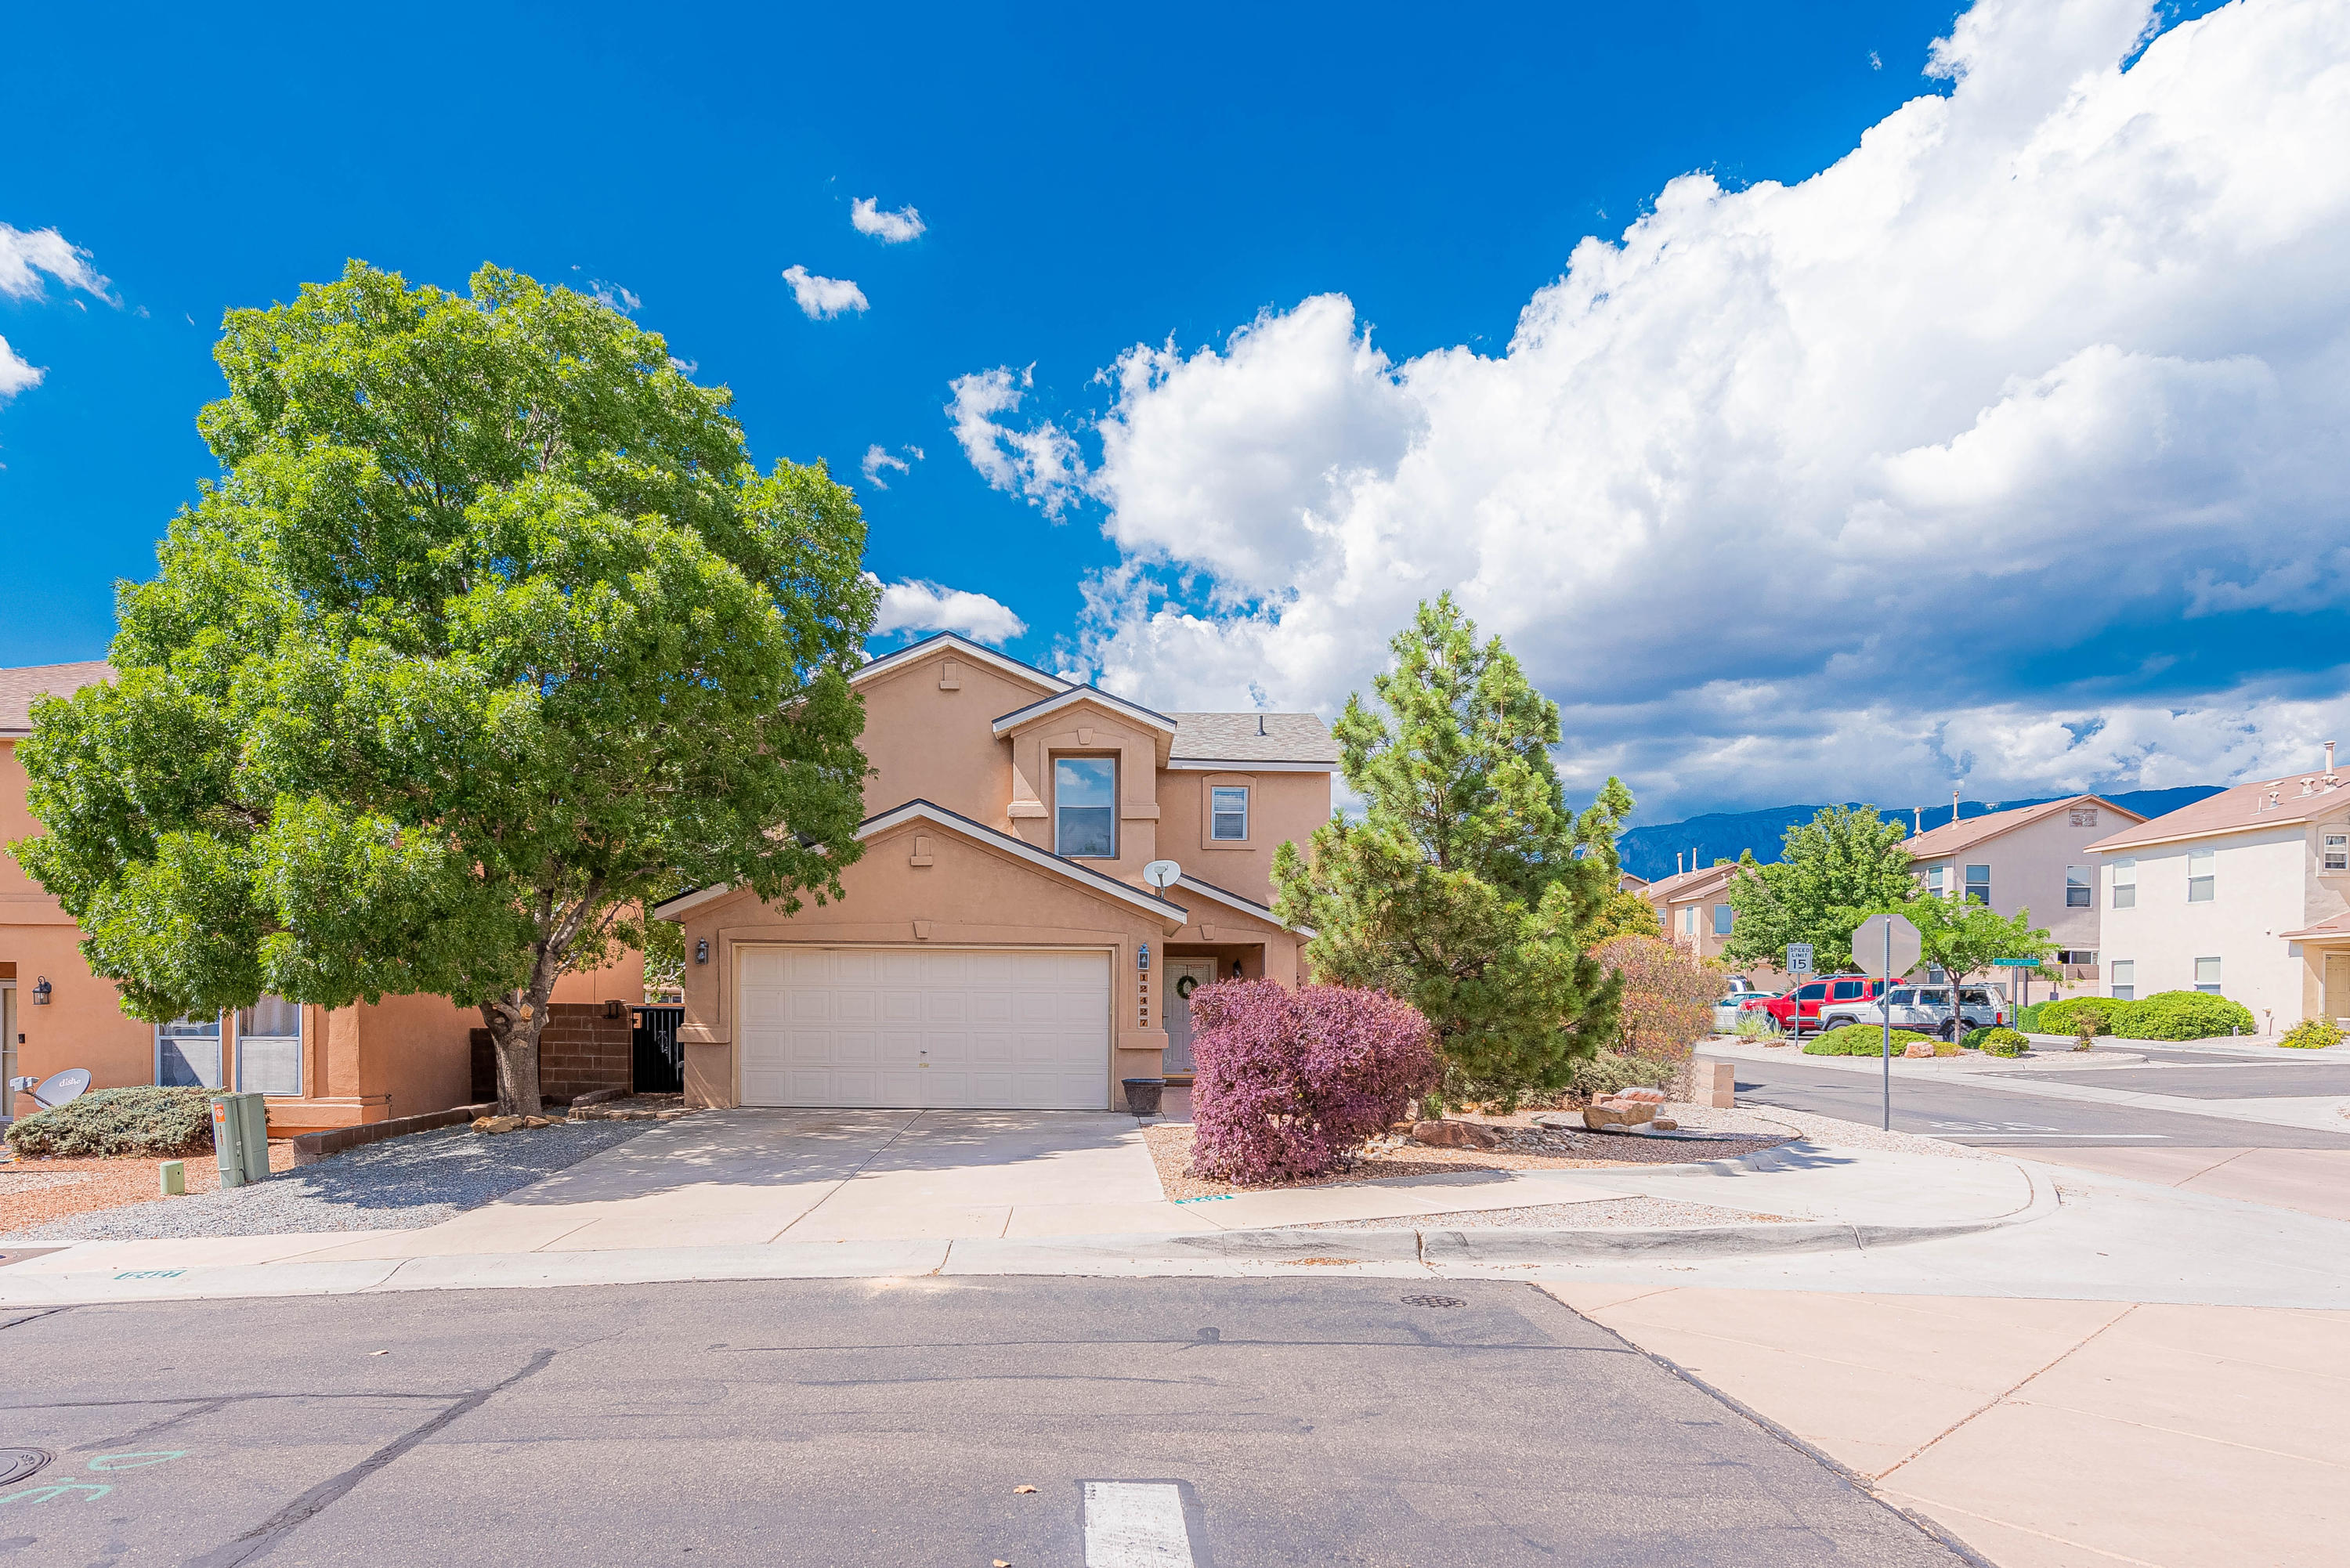 Fantastic home in the NE Heights! Open floor plan with lots of natural light. All appliances stay including washer/dryer and extra fridge in garage! Great views and comfortable backyard with TWO covered patios. New roof has 20 year warranty!